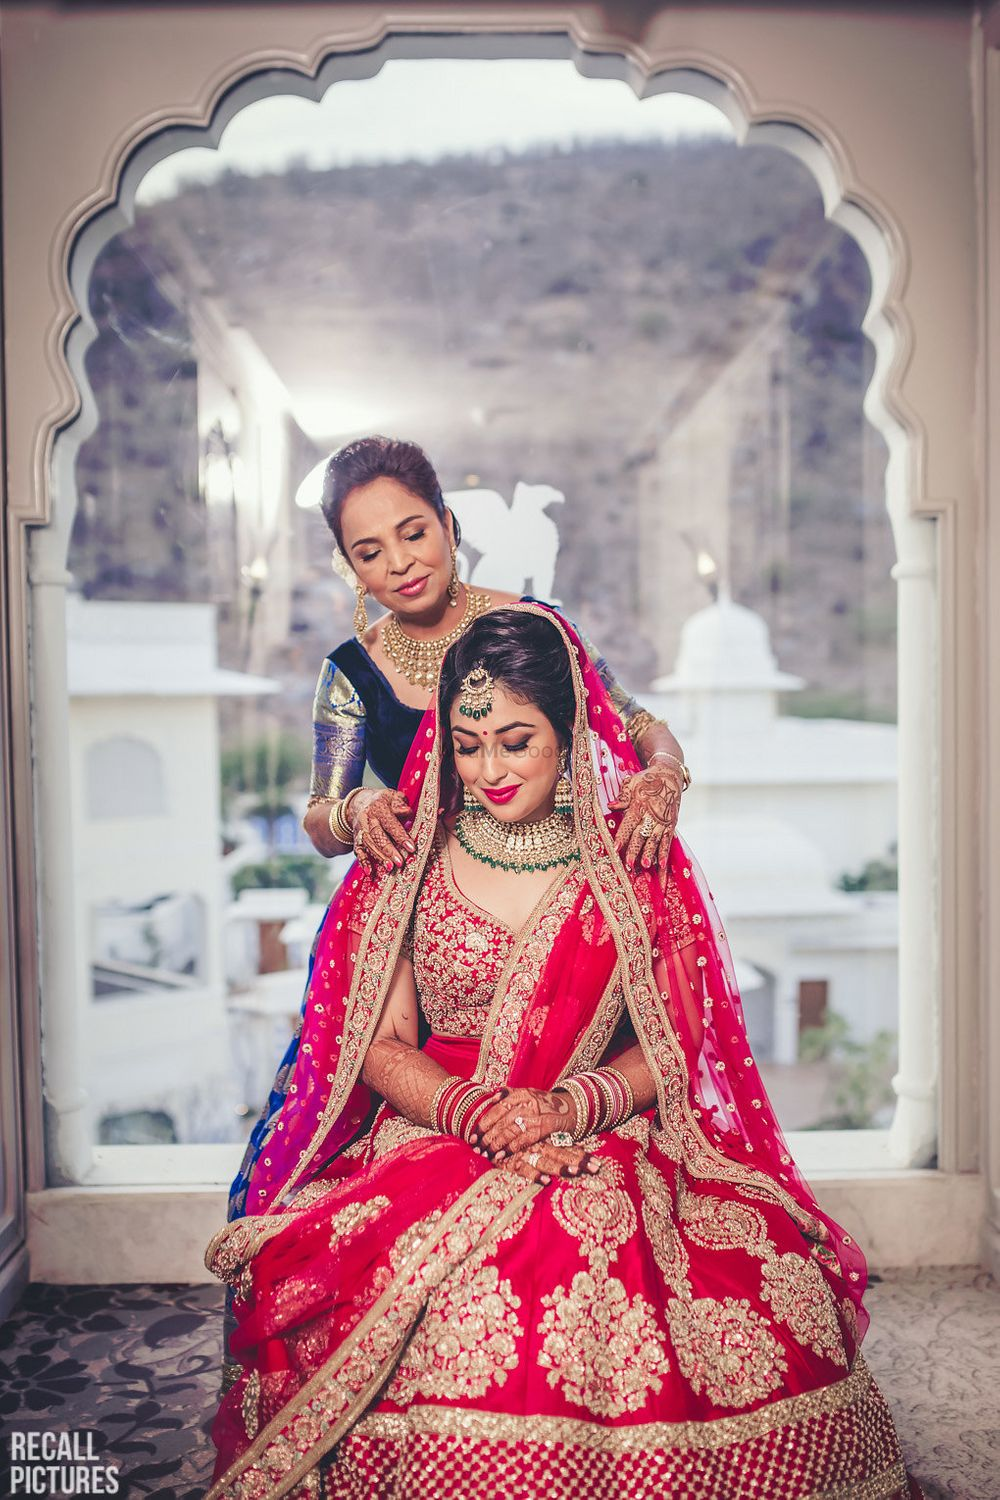 Photo of Brides mom placing the red dupatta on her head